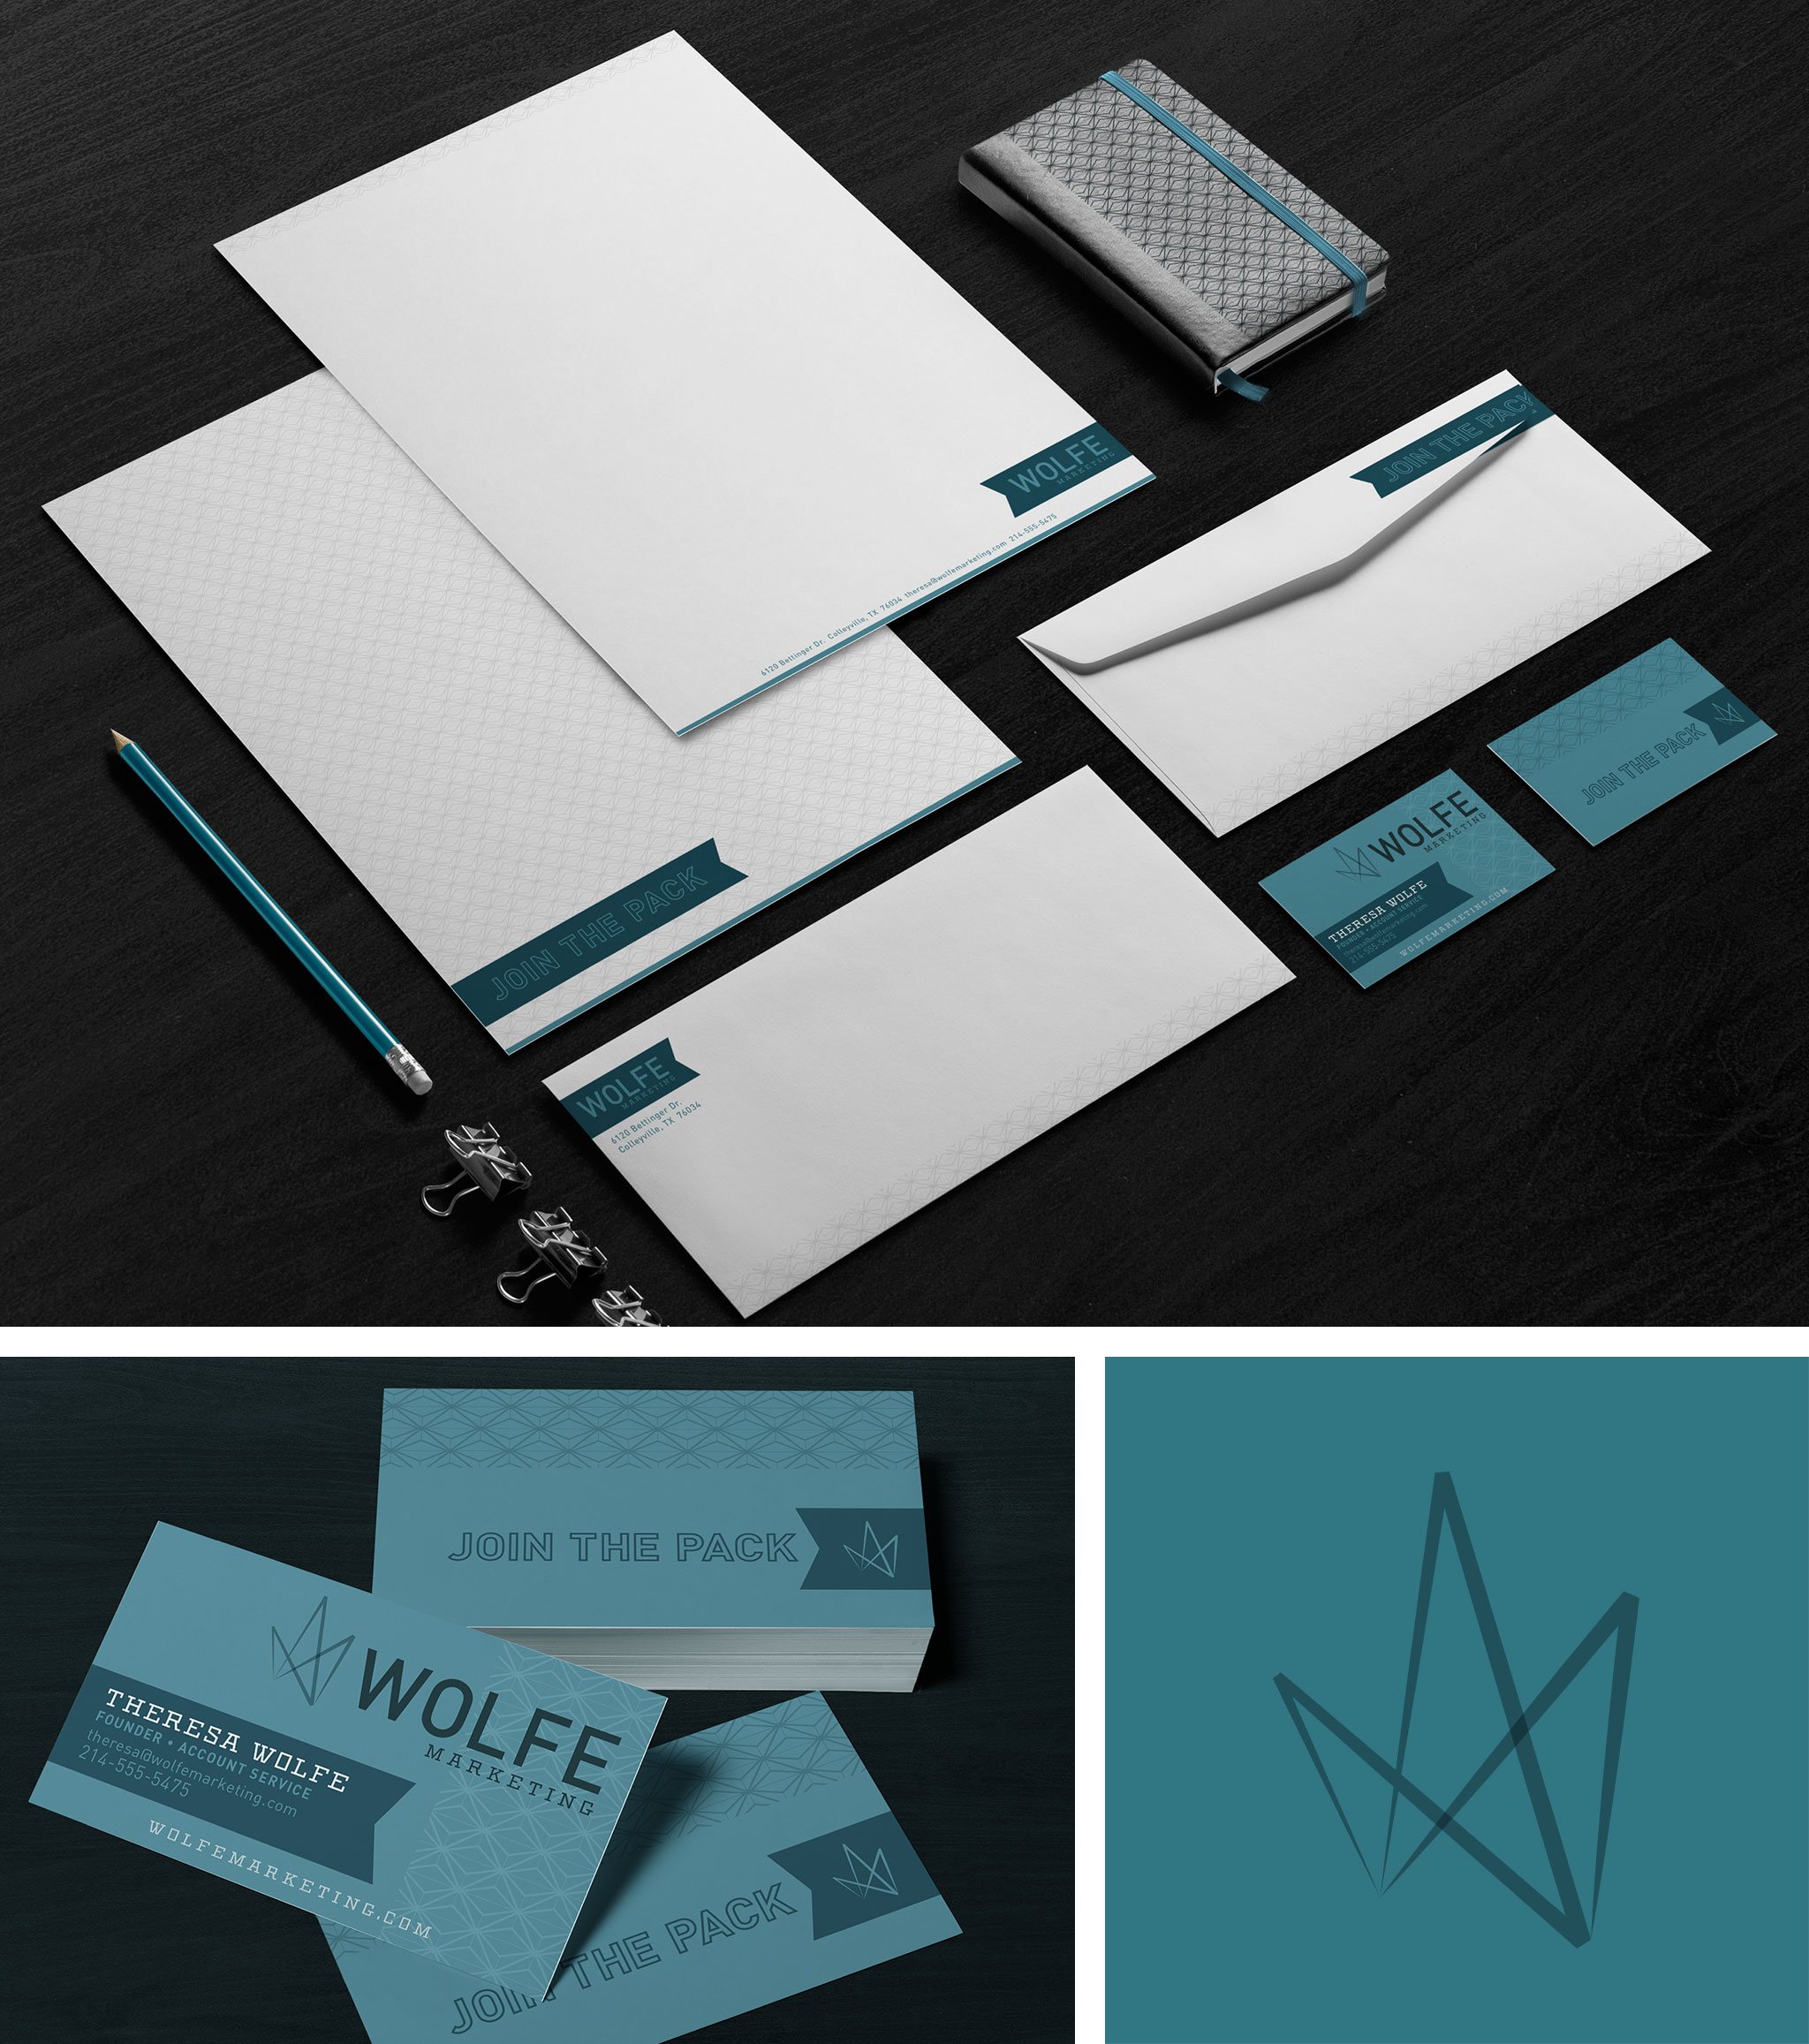 work_design_wolfe